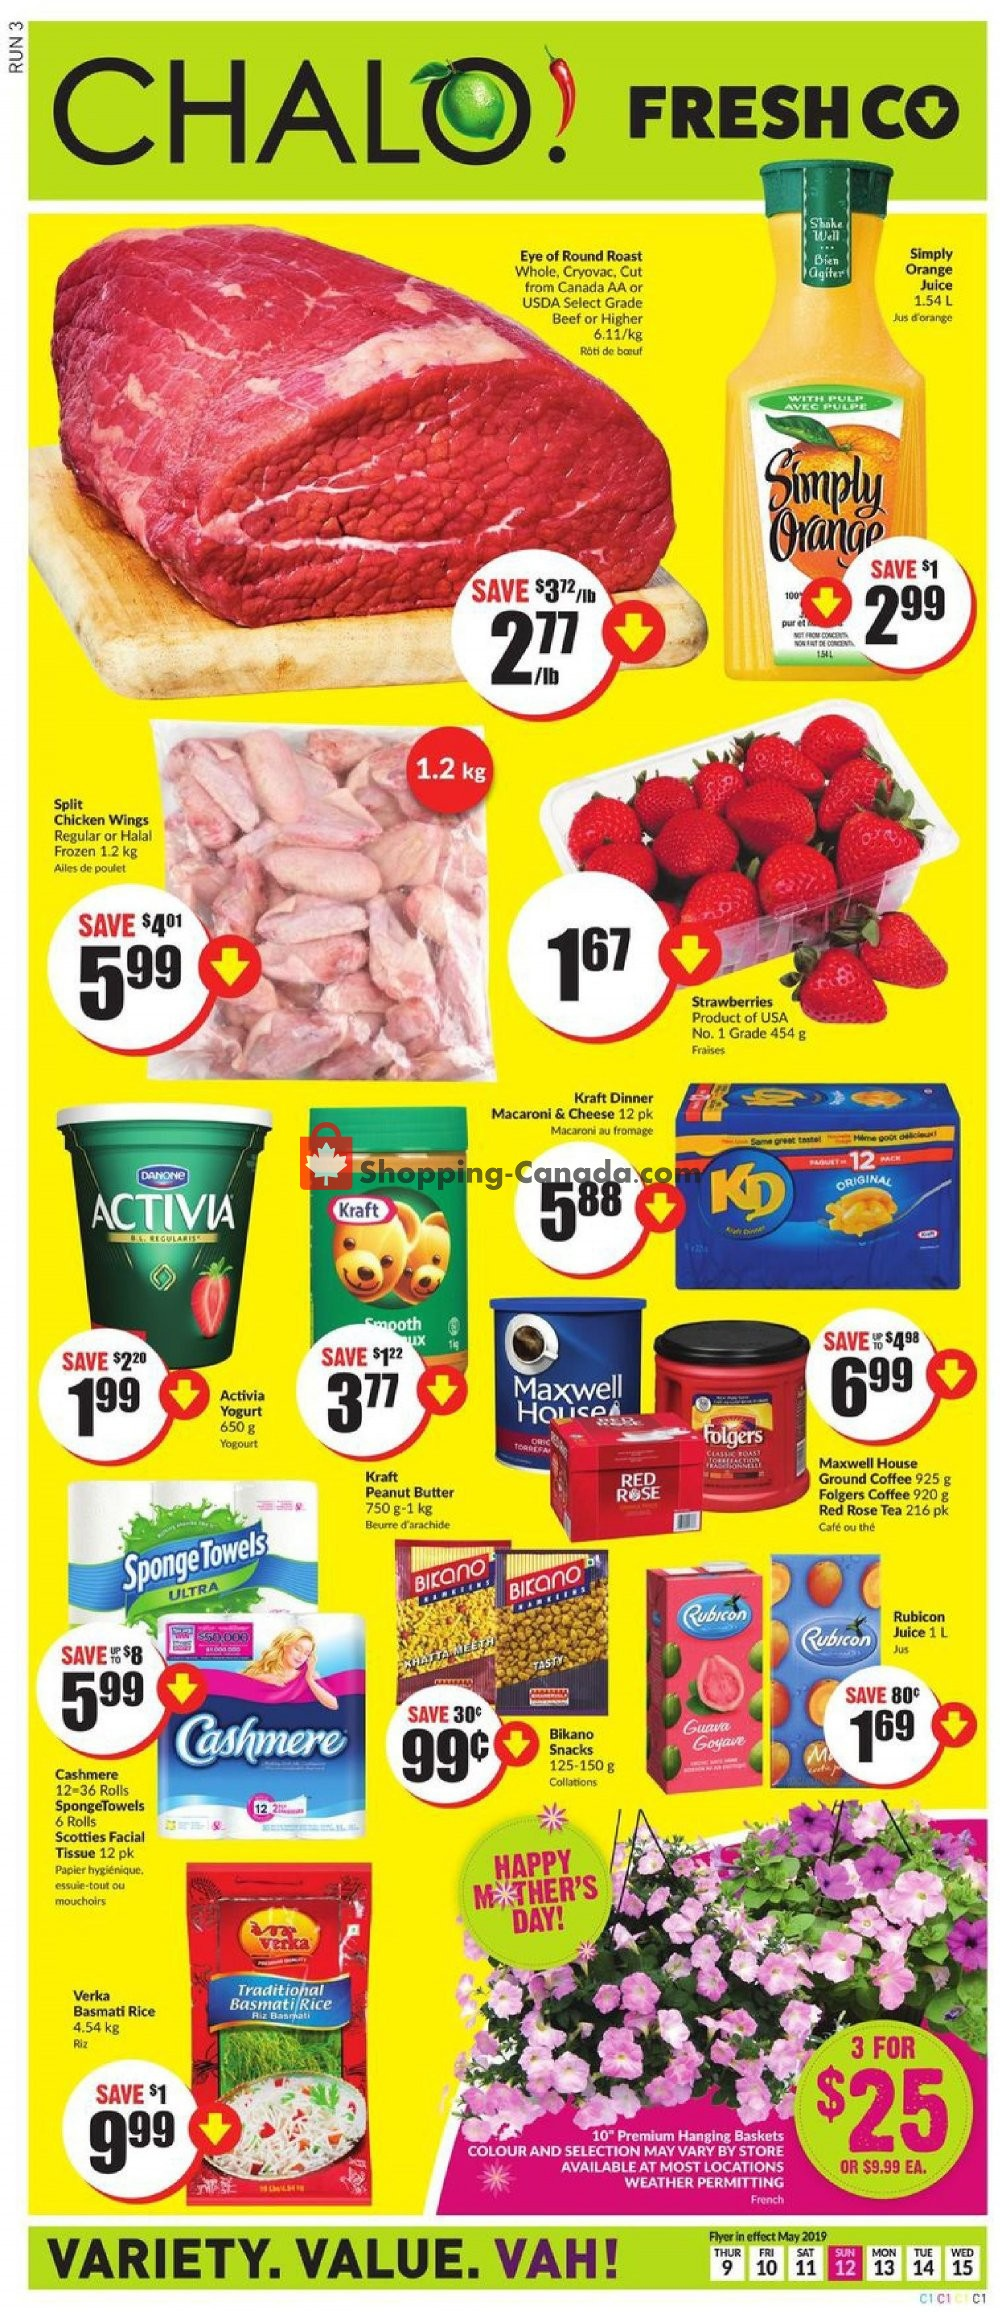 Flyer Chalo FreshCo Canada - from Thursday May 9, 2019 to Wednesday May 15, 2019